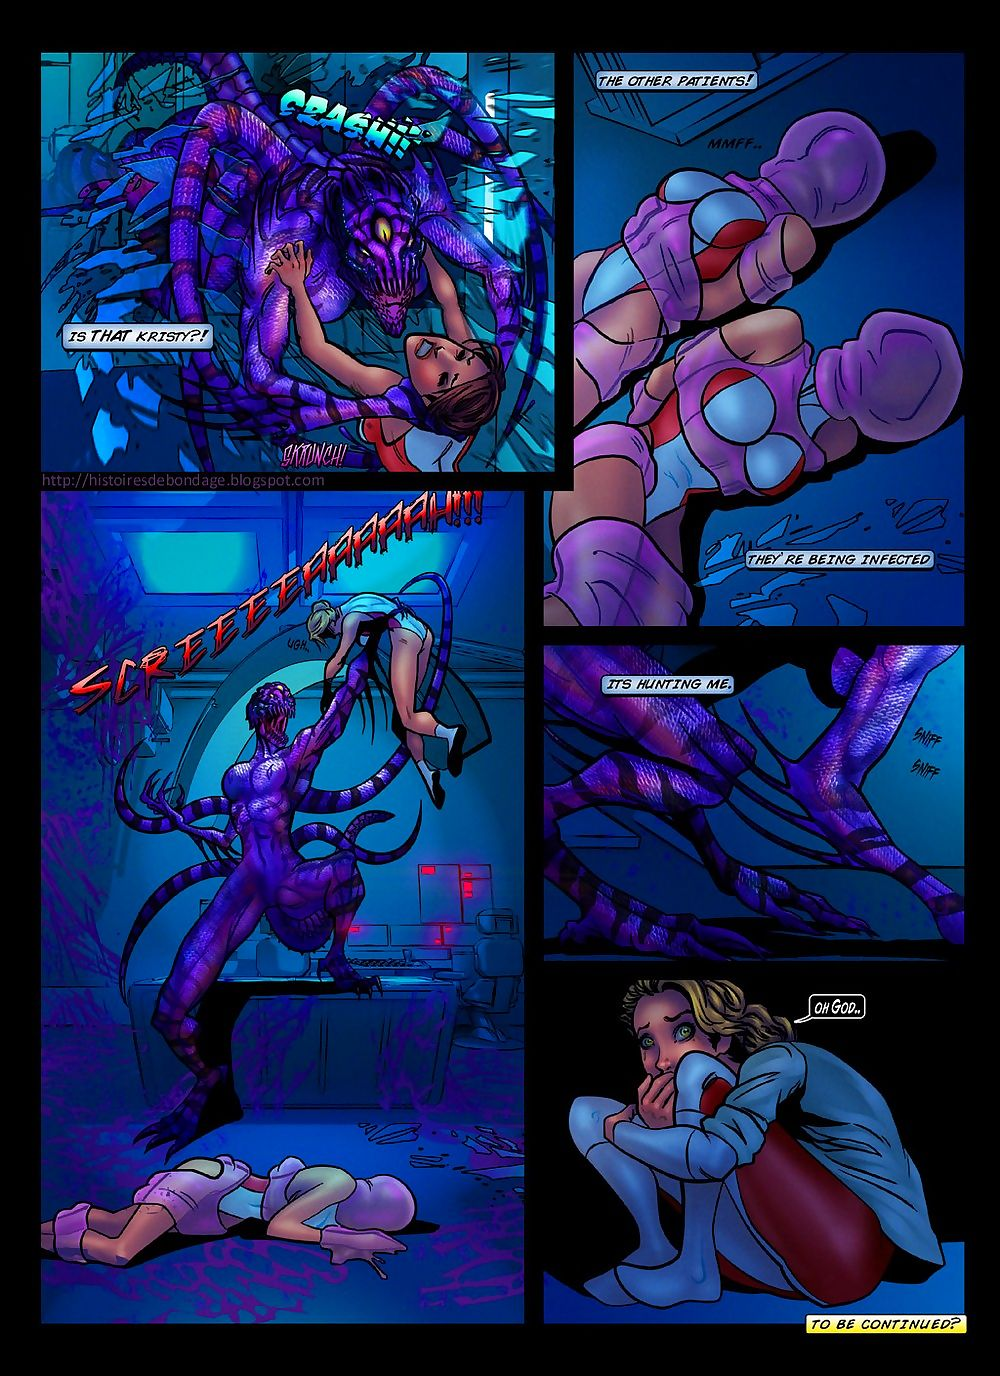 The Space Asphyx Monster